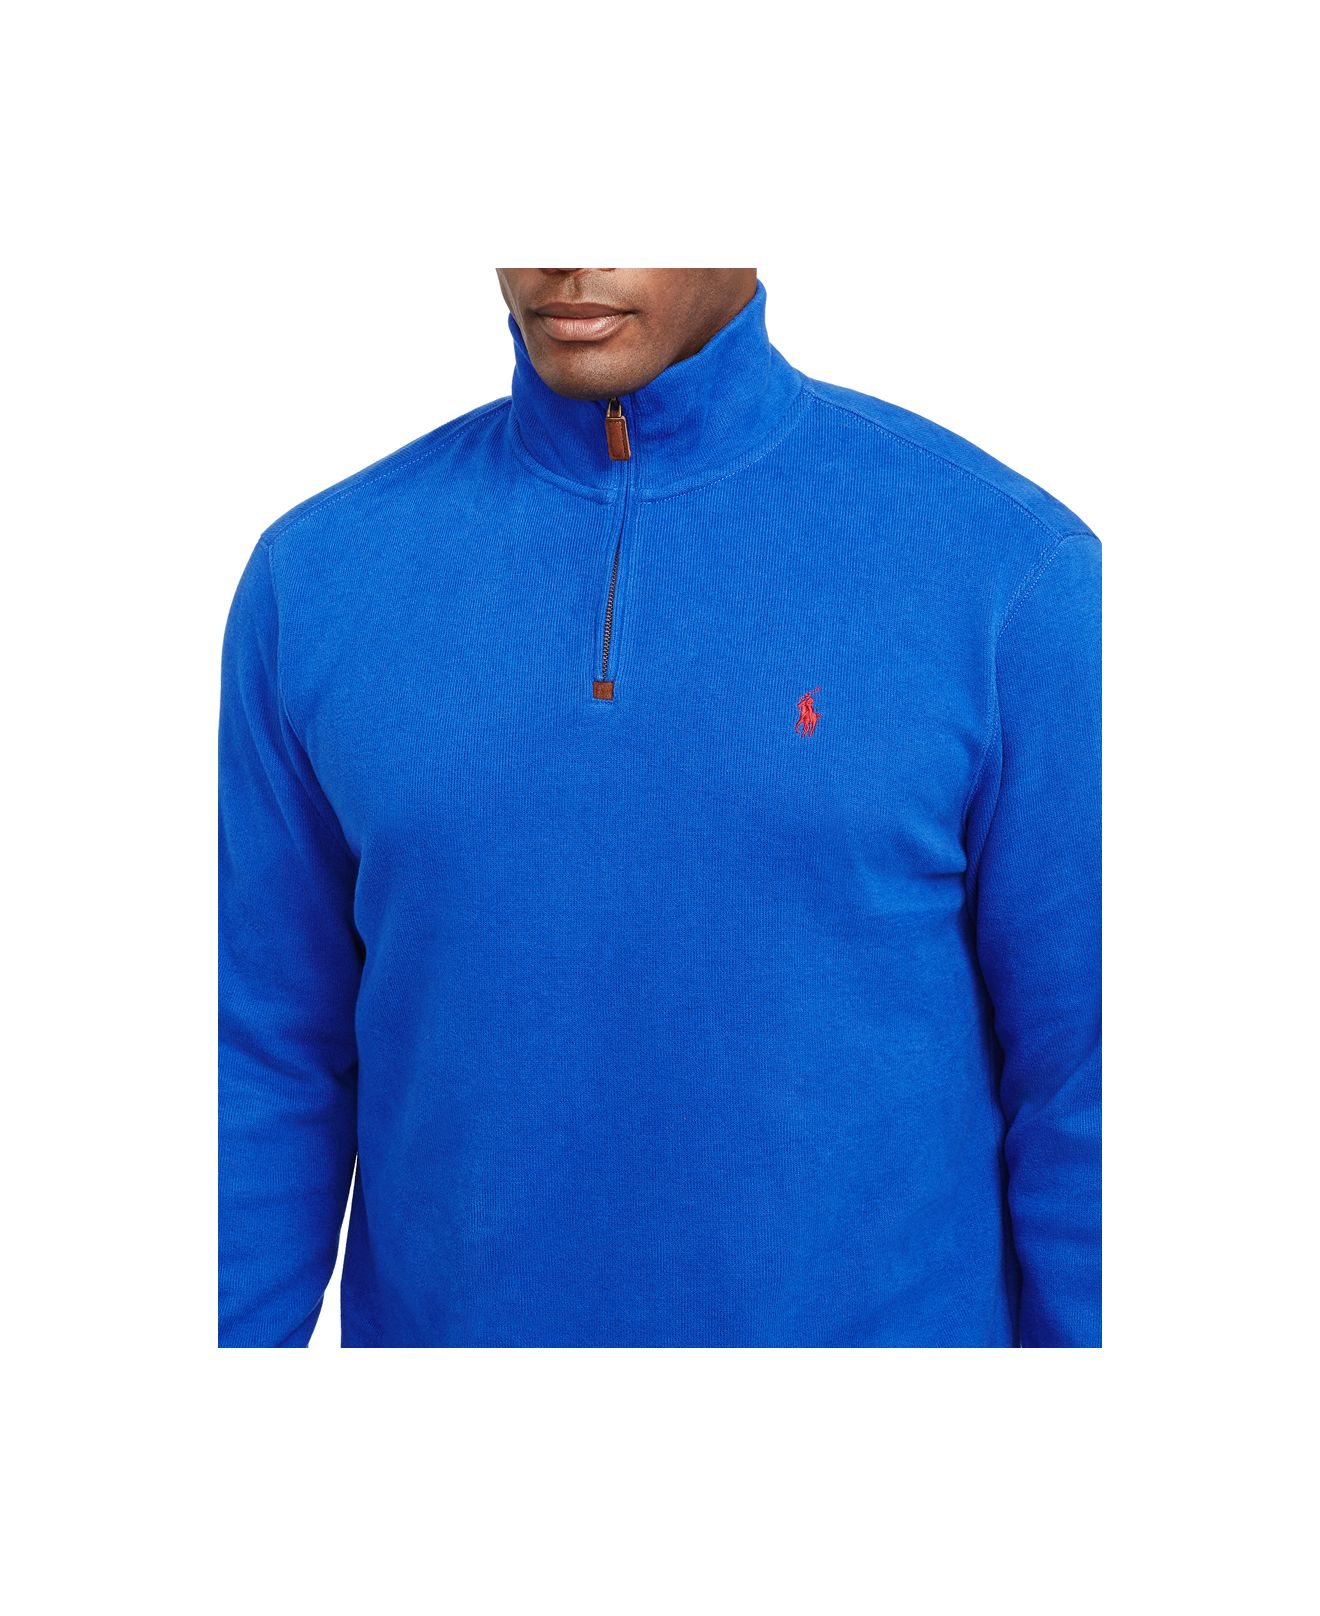 Polo ralph lauren Big And Tall French-rib Half-zip Pullover in Blue for